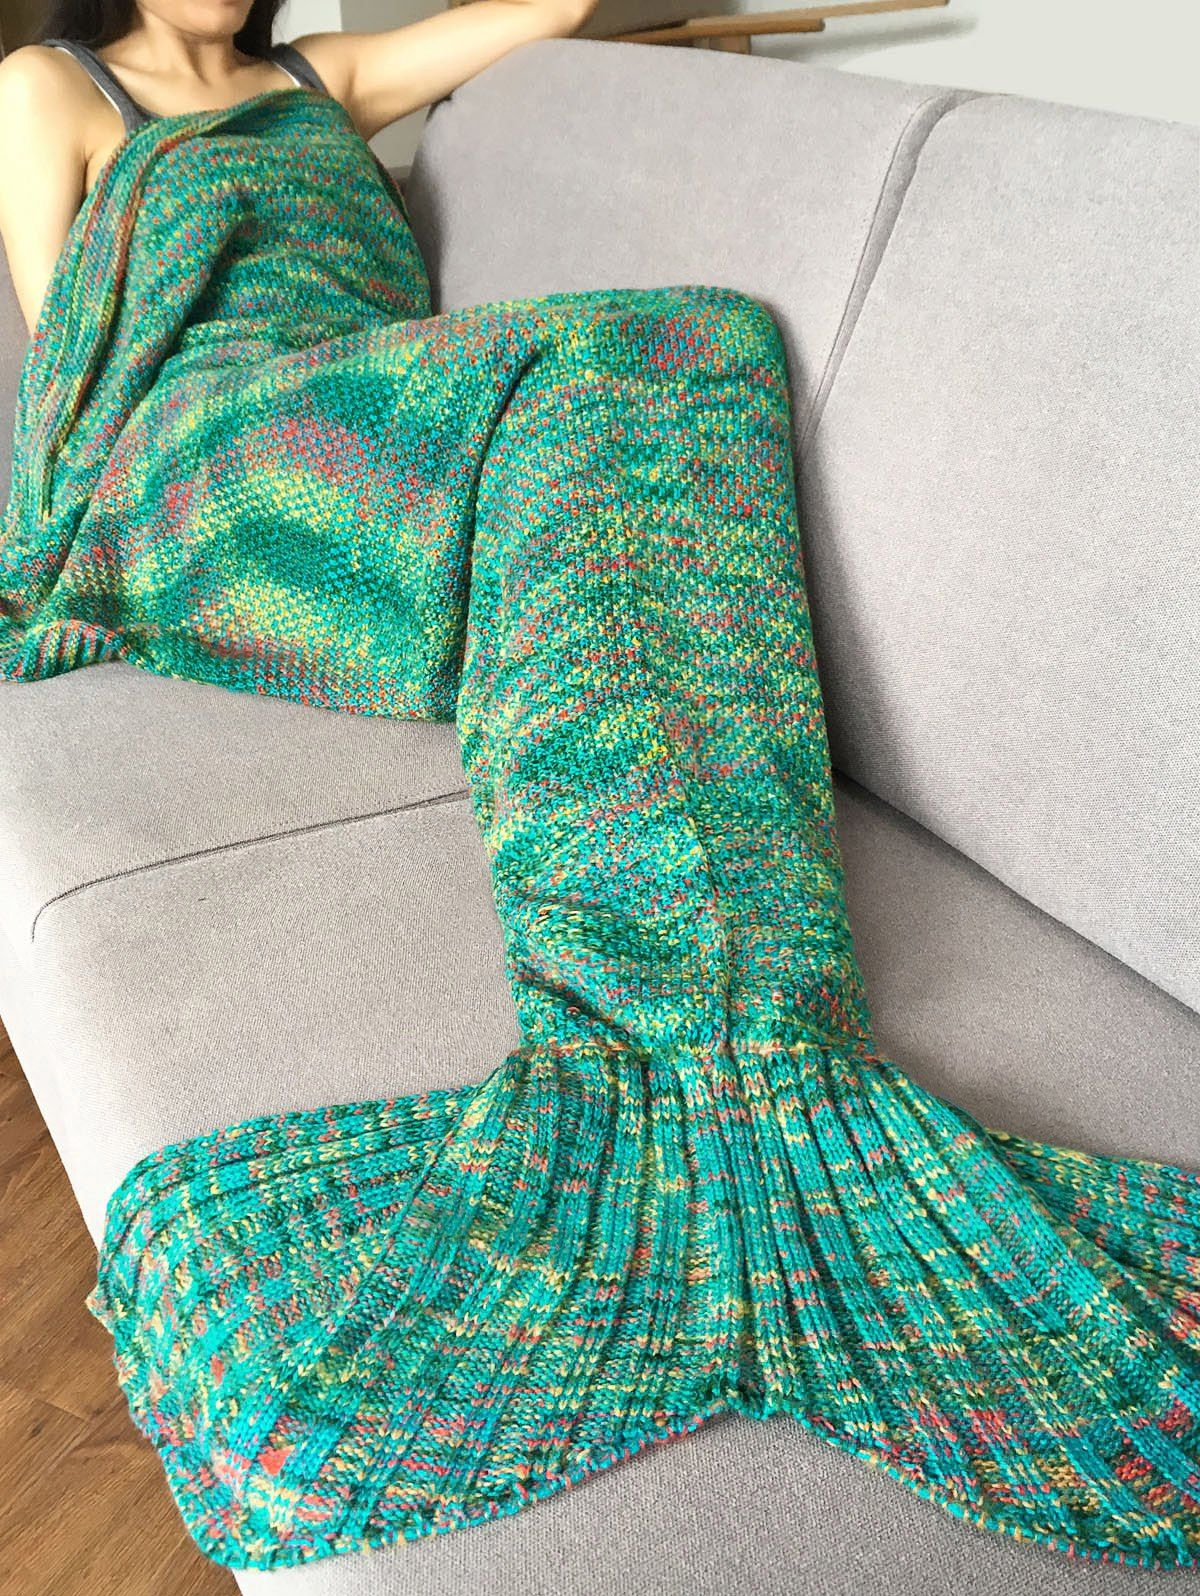 d29cbe55c41 Stylish Crochet Knitted Super Soft Mermaid Tail Shape Blanket For Adult